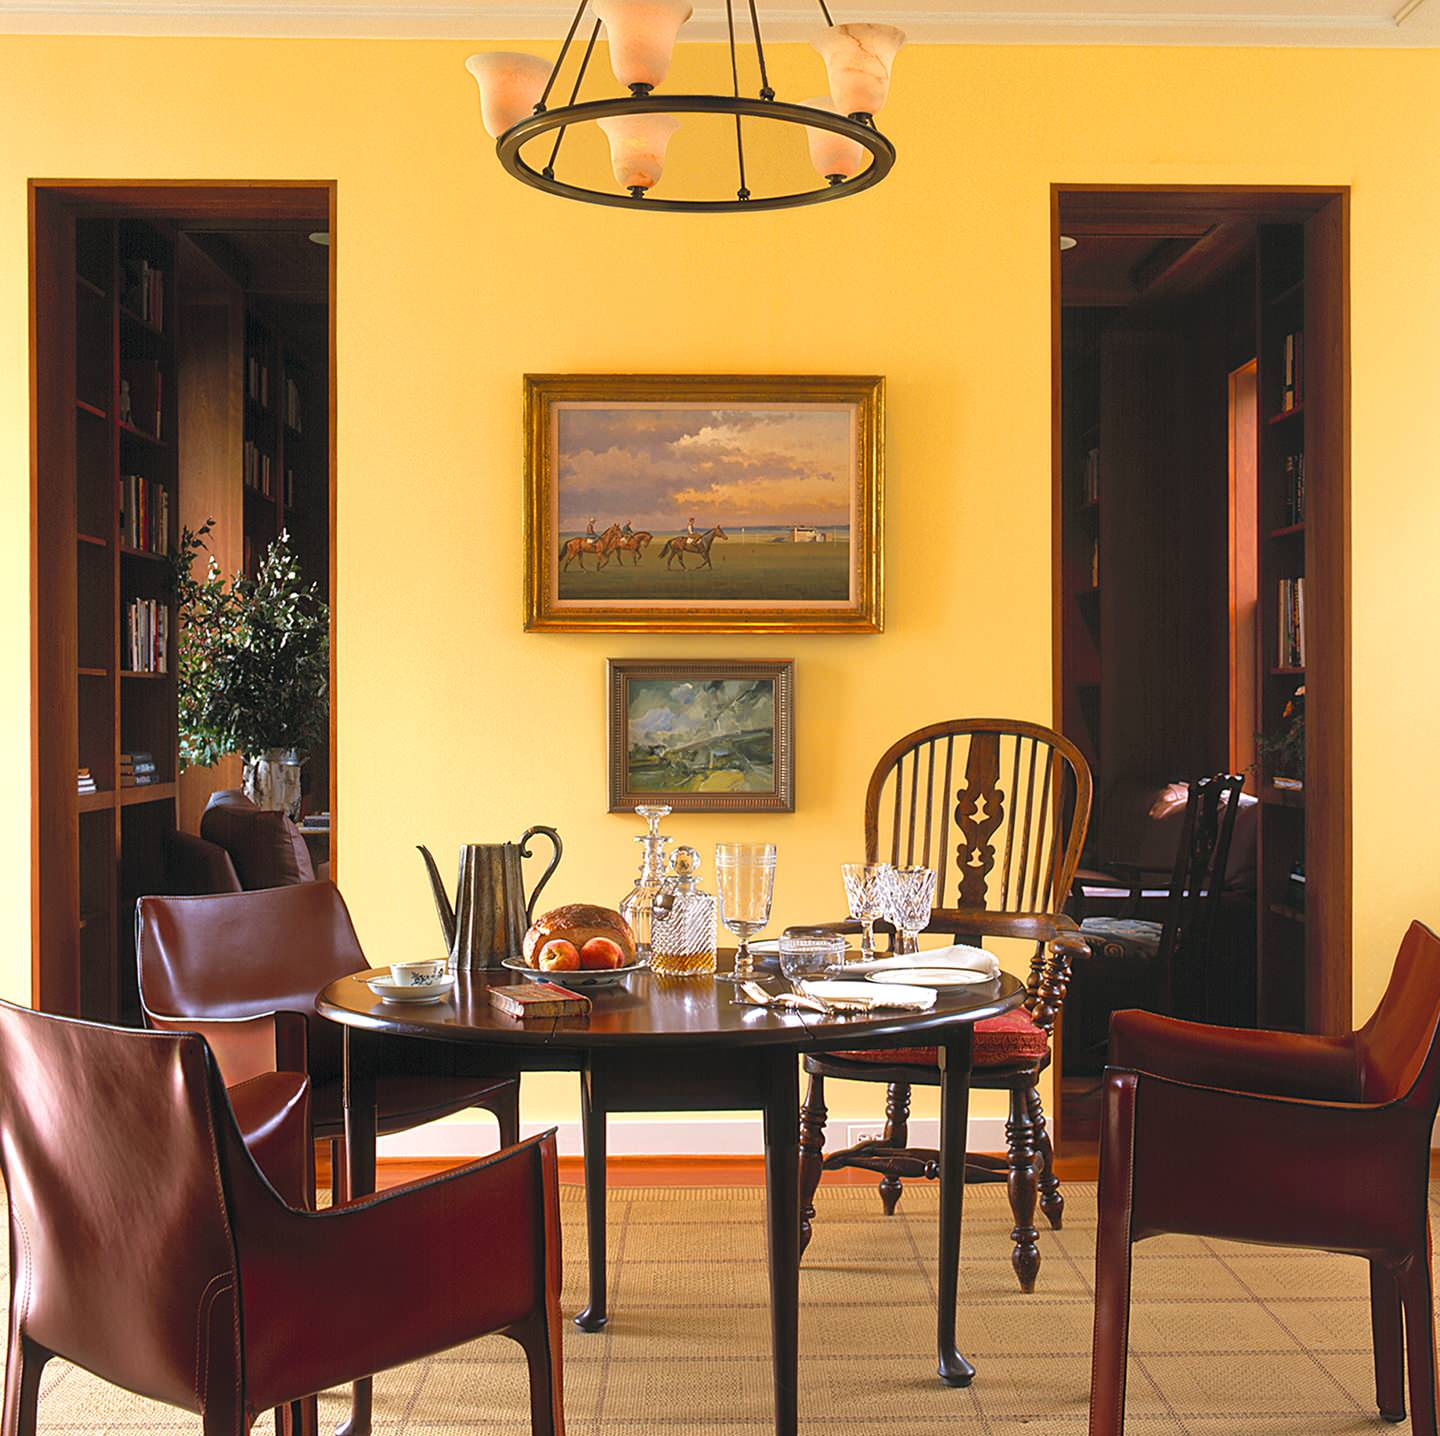 75 Beautiful Traditional Orange Dining Room Pictures Ideas March 2021 Houzz